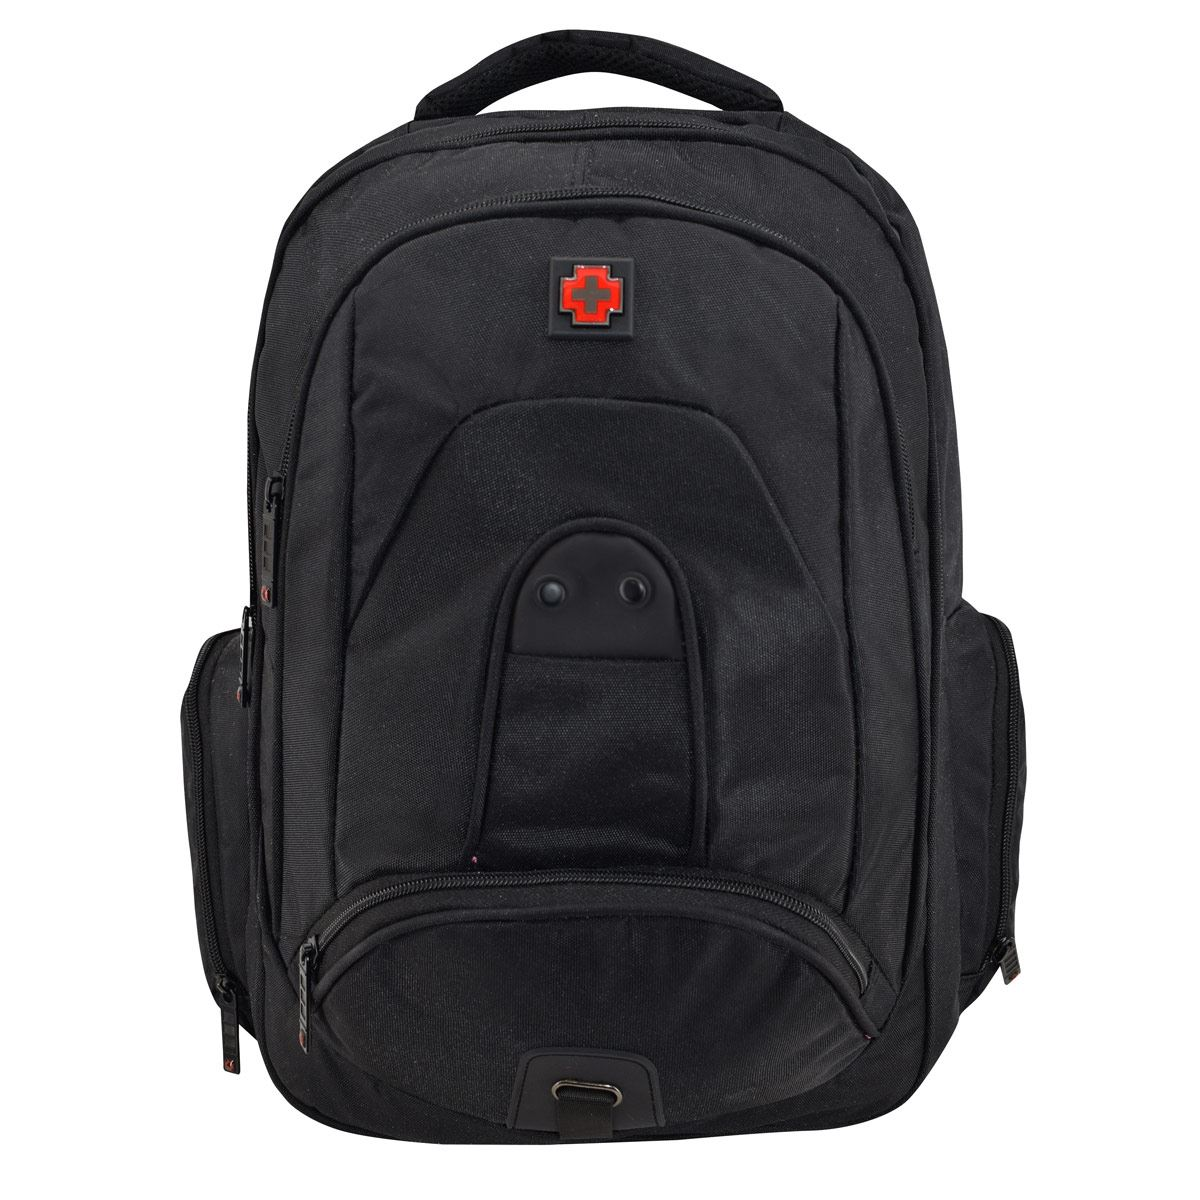 BACKPACK NEGRA SB X-00437